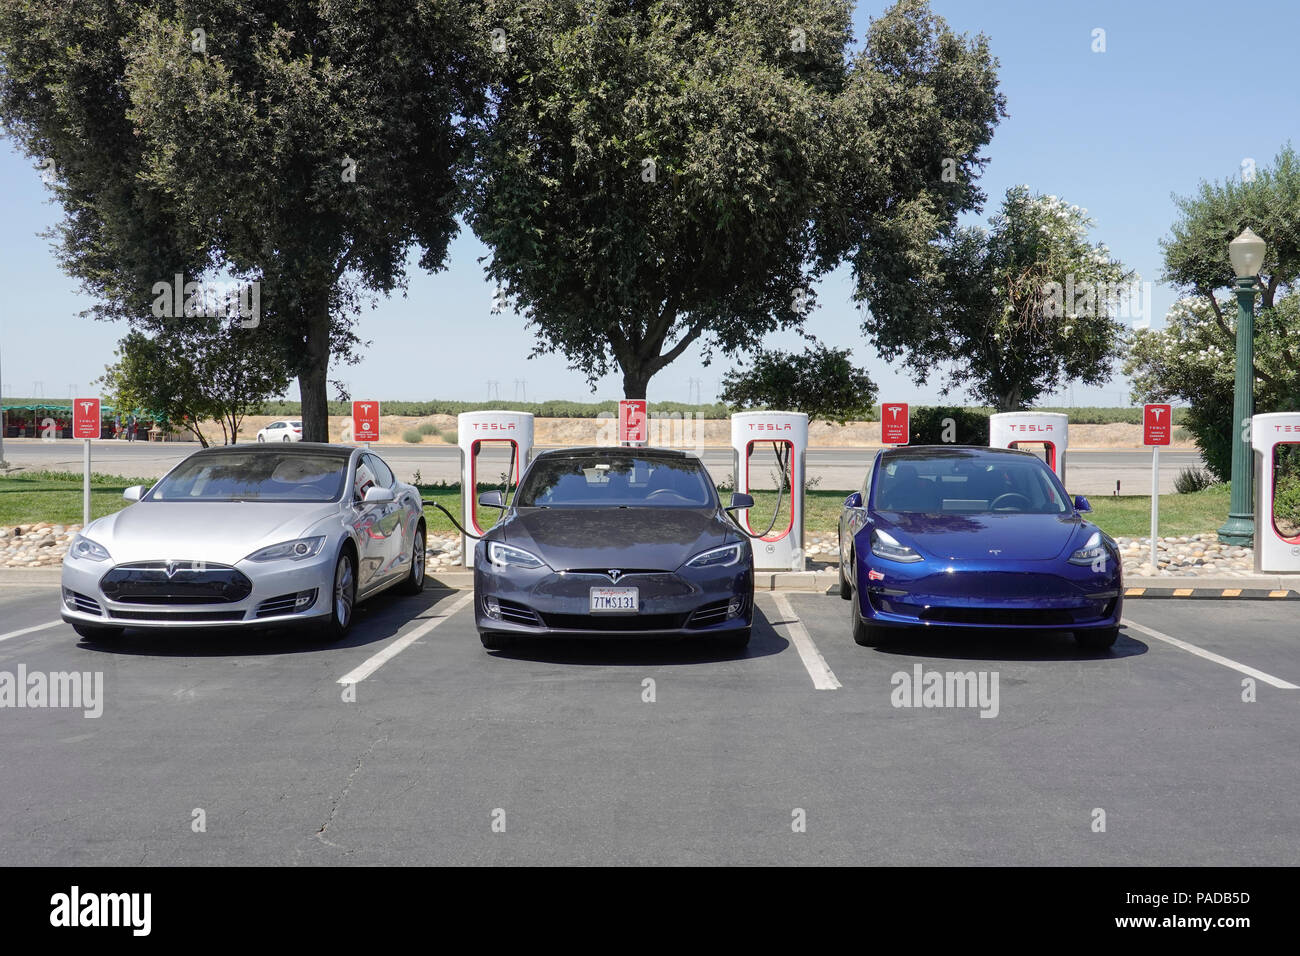 Tesla Supercharging Stations at Harris Ranch, a popular stop over on Interstate 5 in California's Central Valley. - Stock Image